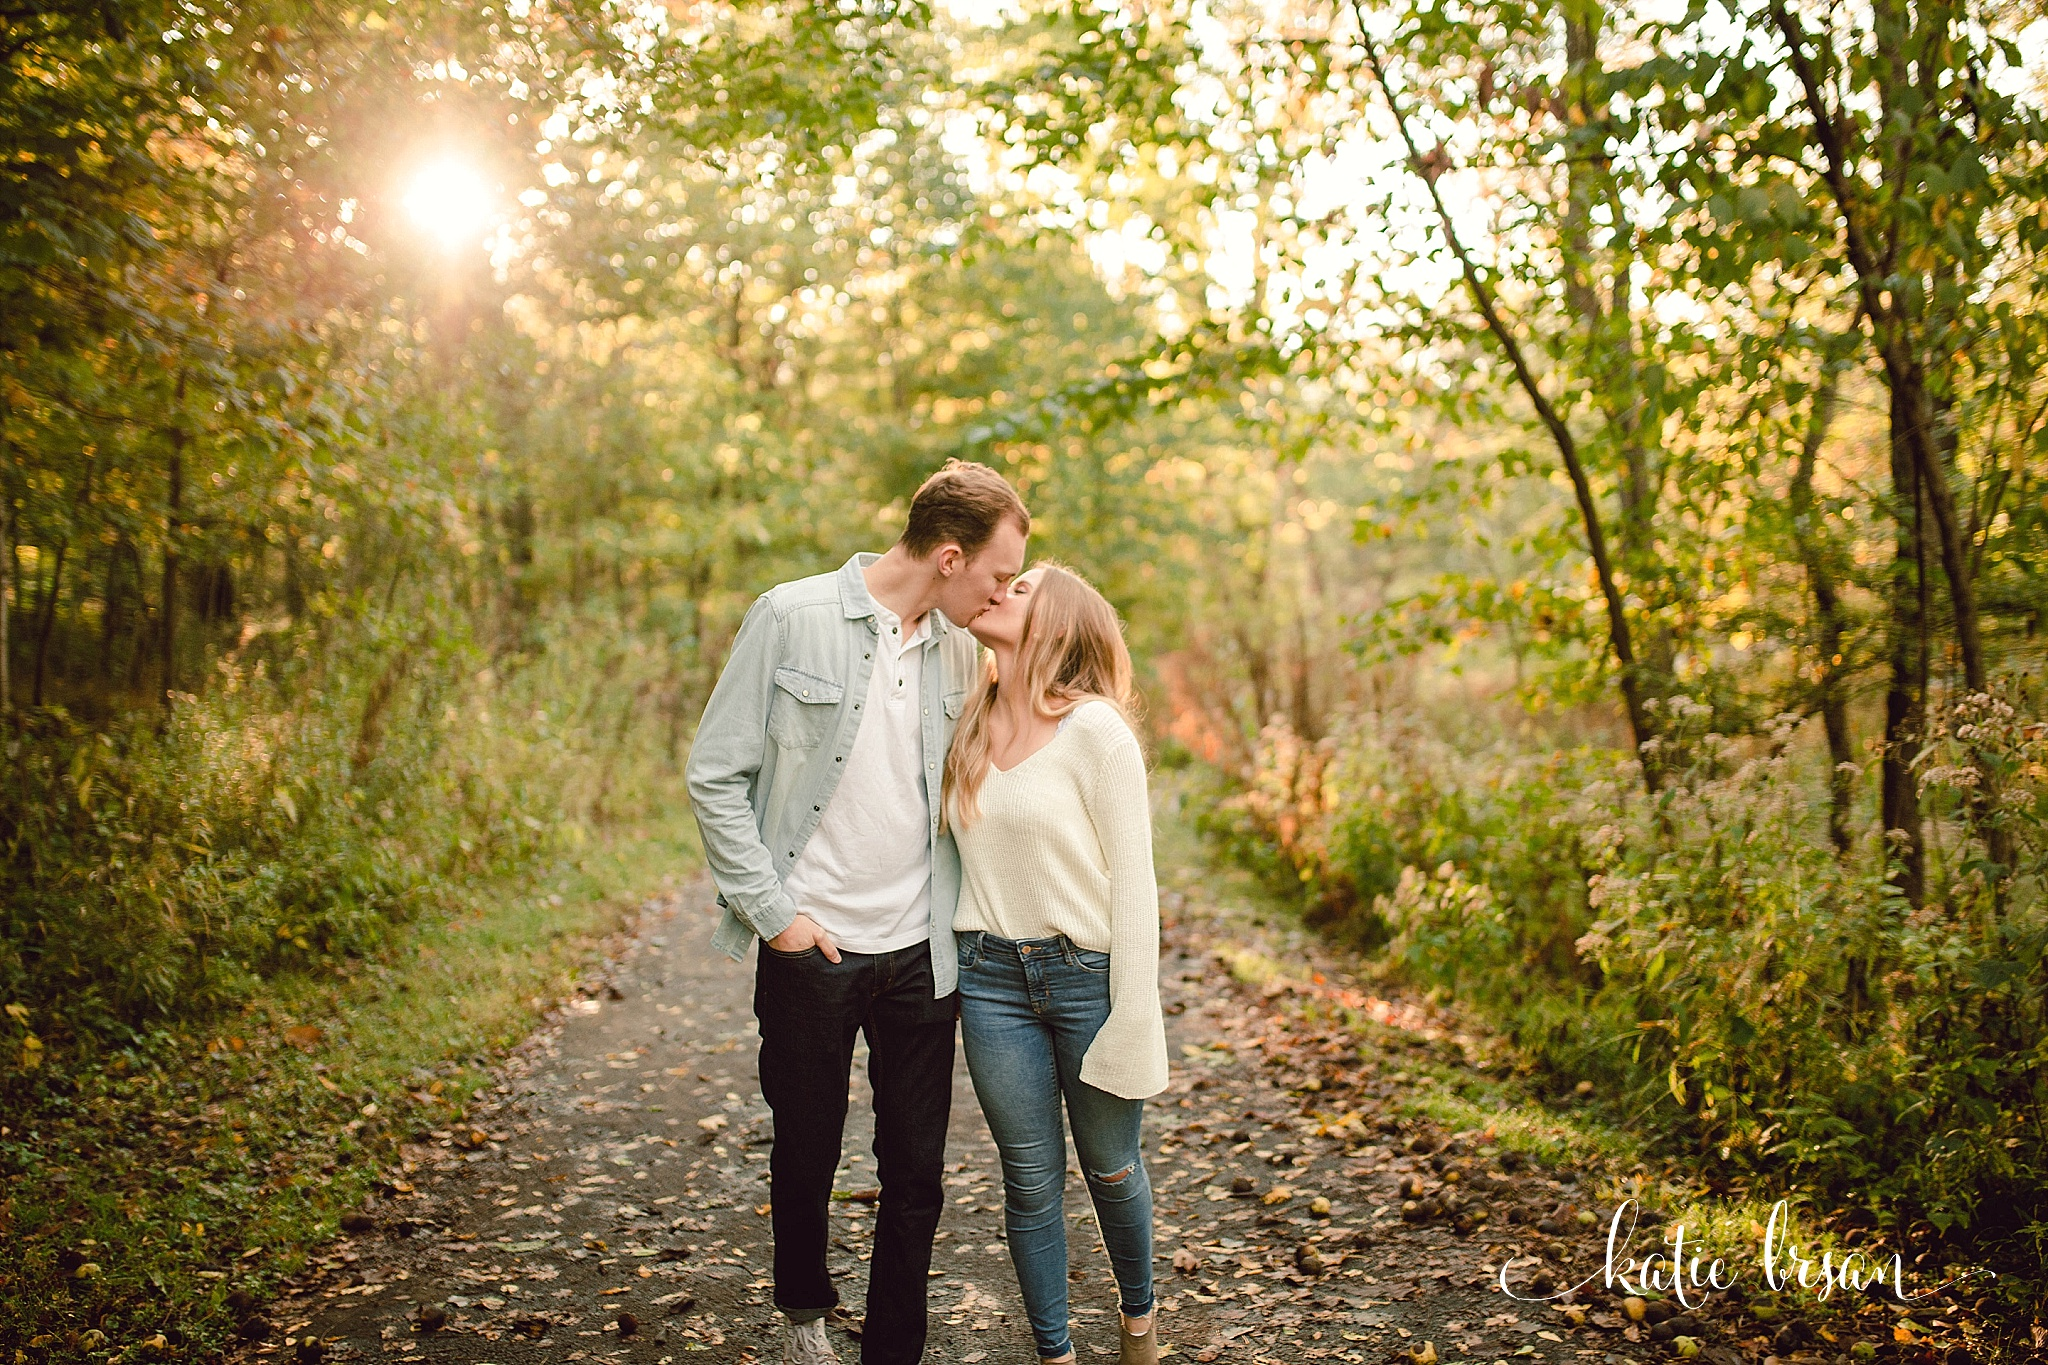 Mokena_EngagementSession_ChicagoWeddingPhotographer_1191.jpg